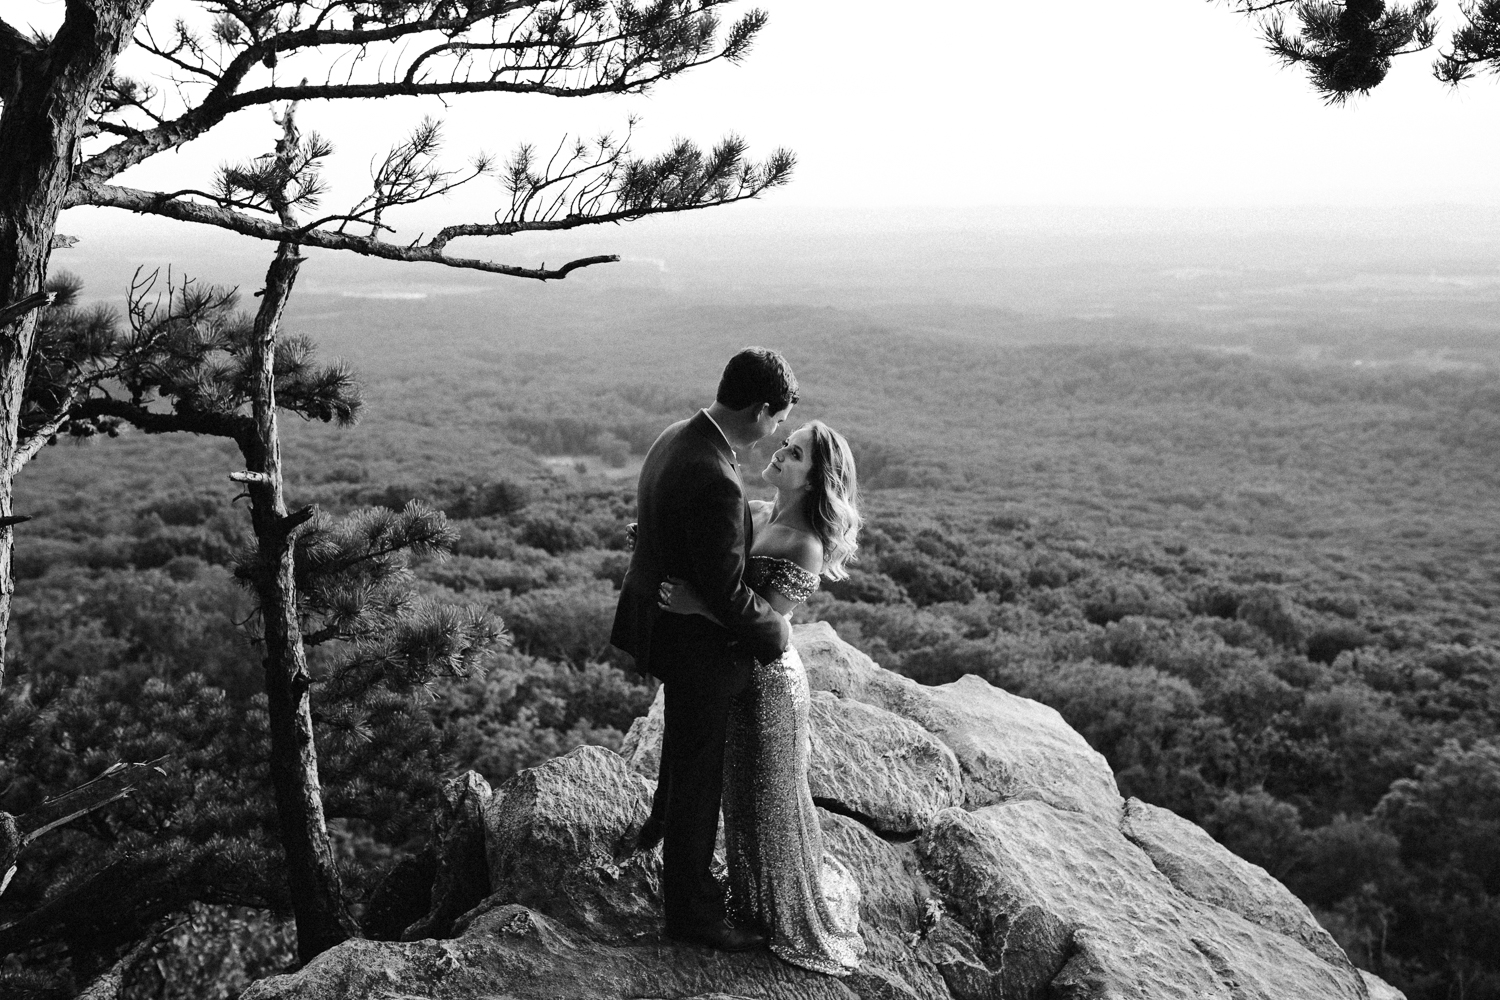 sugar_loaf_mountain_maryland_mountain_top_engagement_photographer-17.jpg